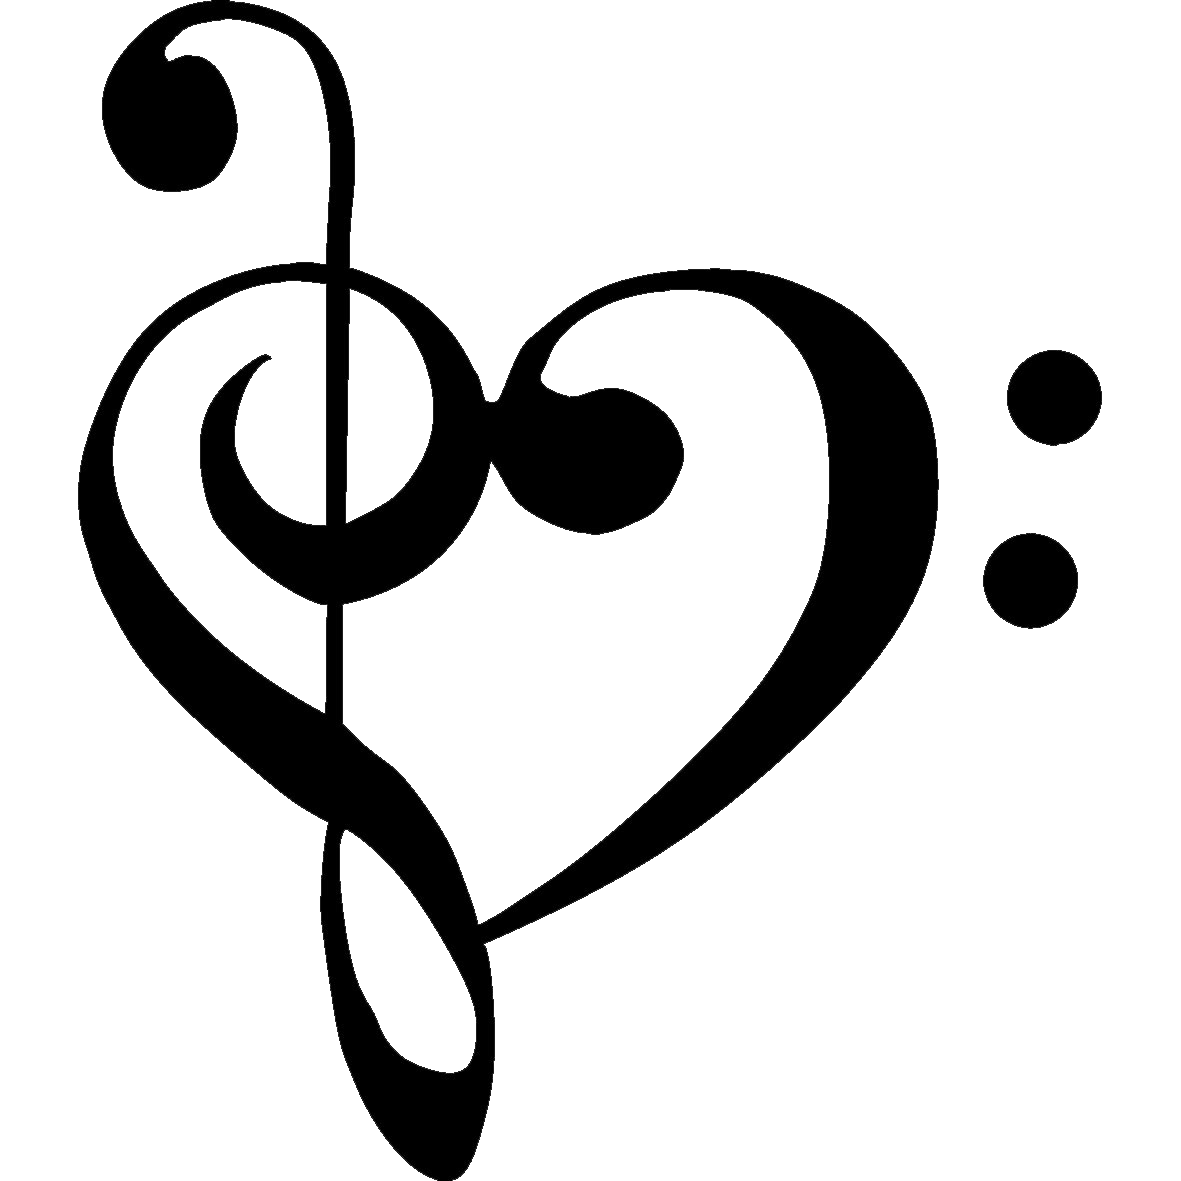 Musical heart clipart image library library tumblr_mk62c2Nkb11s5jjtzo1_1280.png (1181×1181) | Dessins et ... image library library